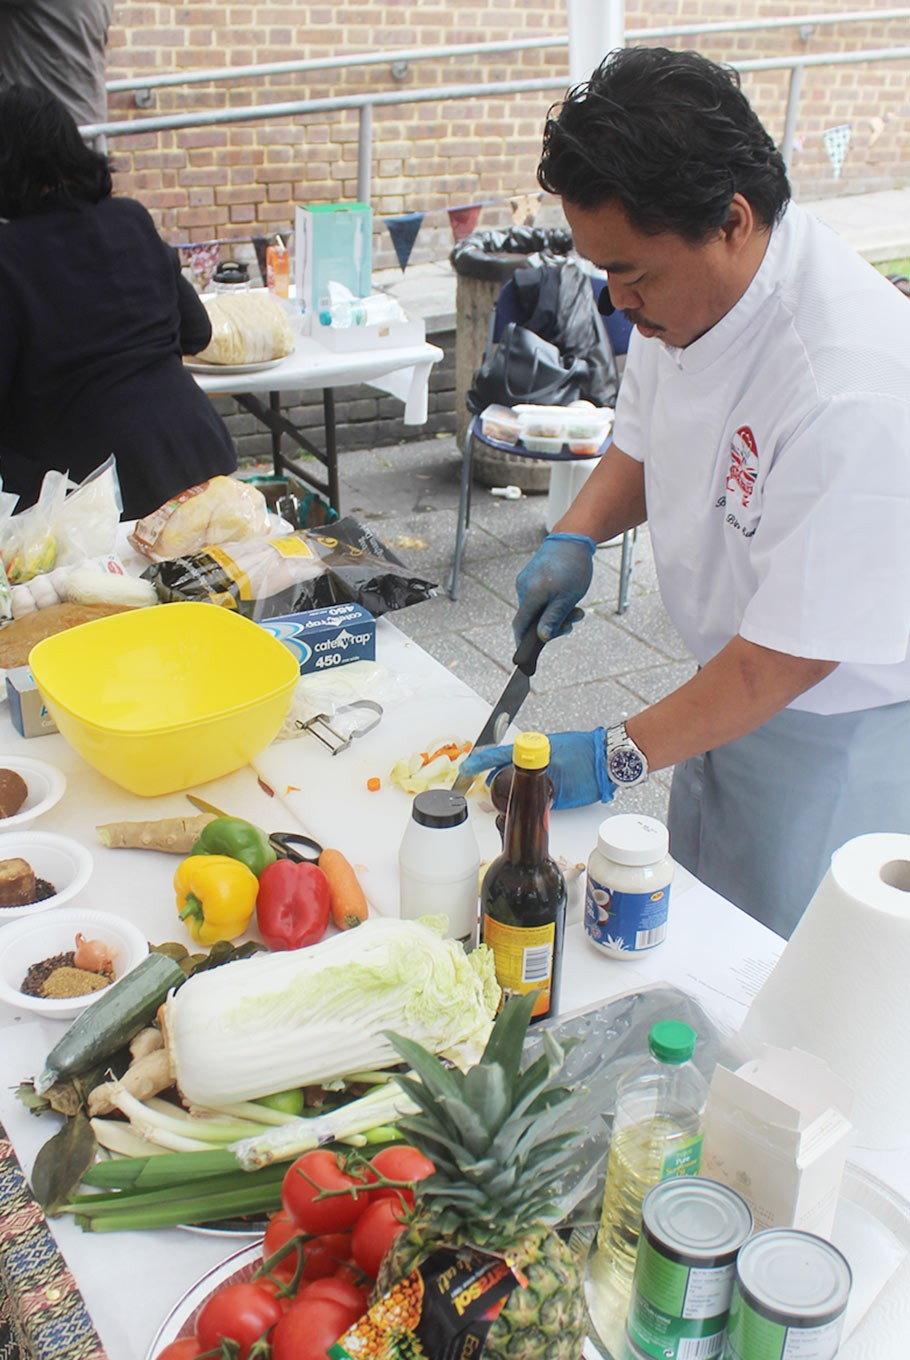 Chef Budiono bin Sukim conducts a cooking demo at the IKON Festival 2017.